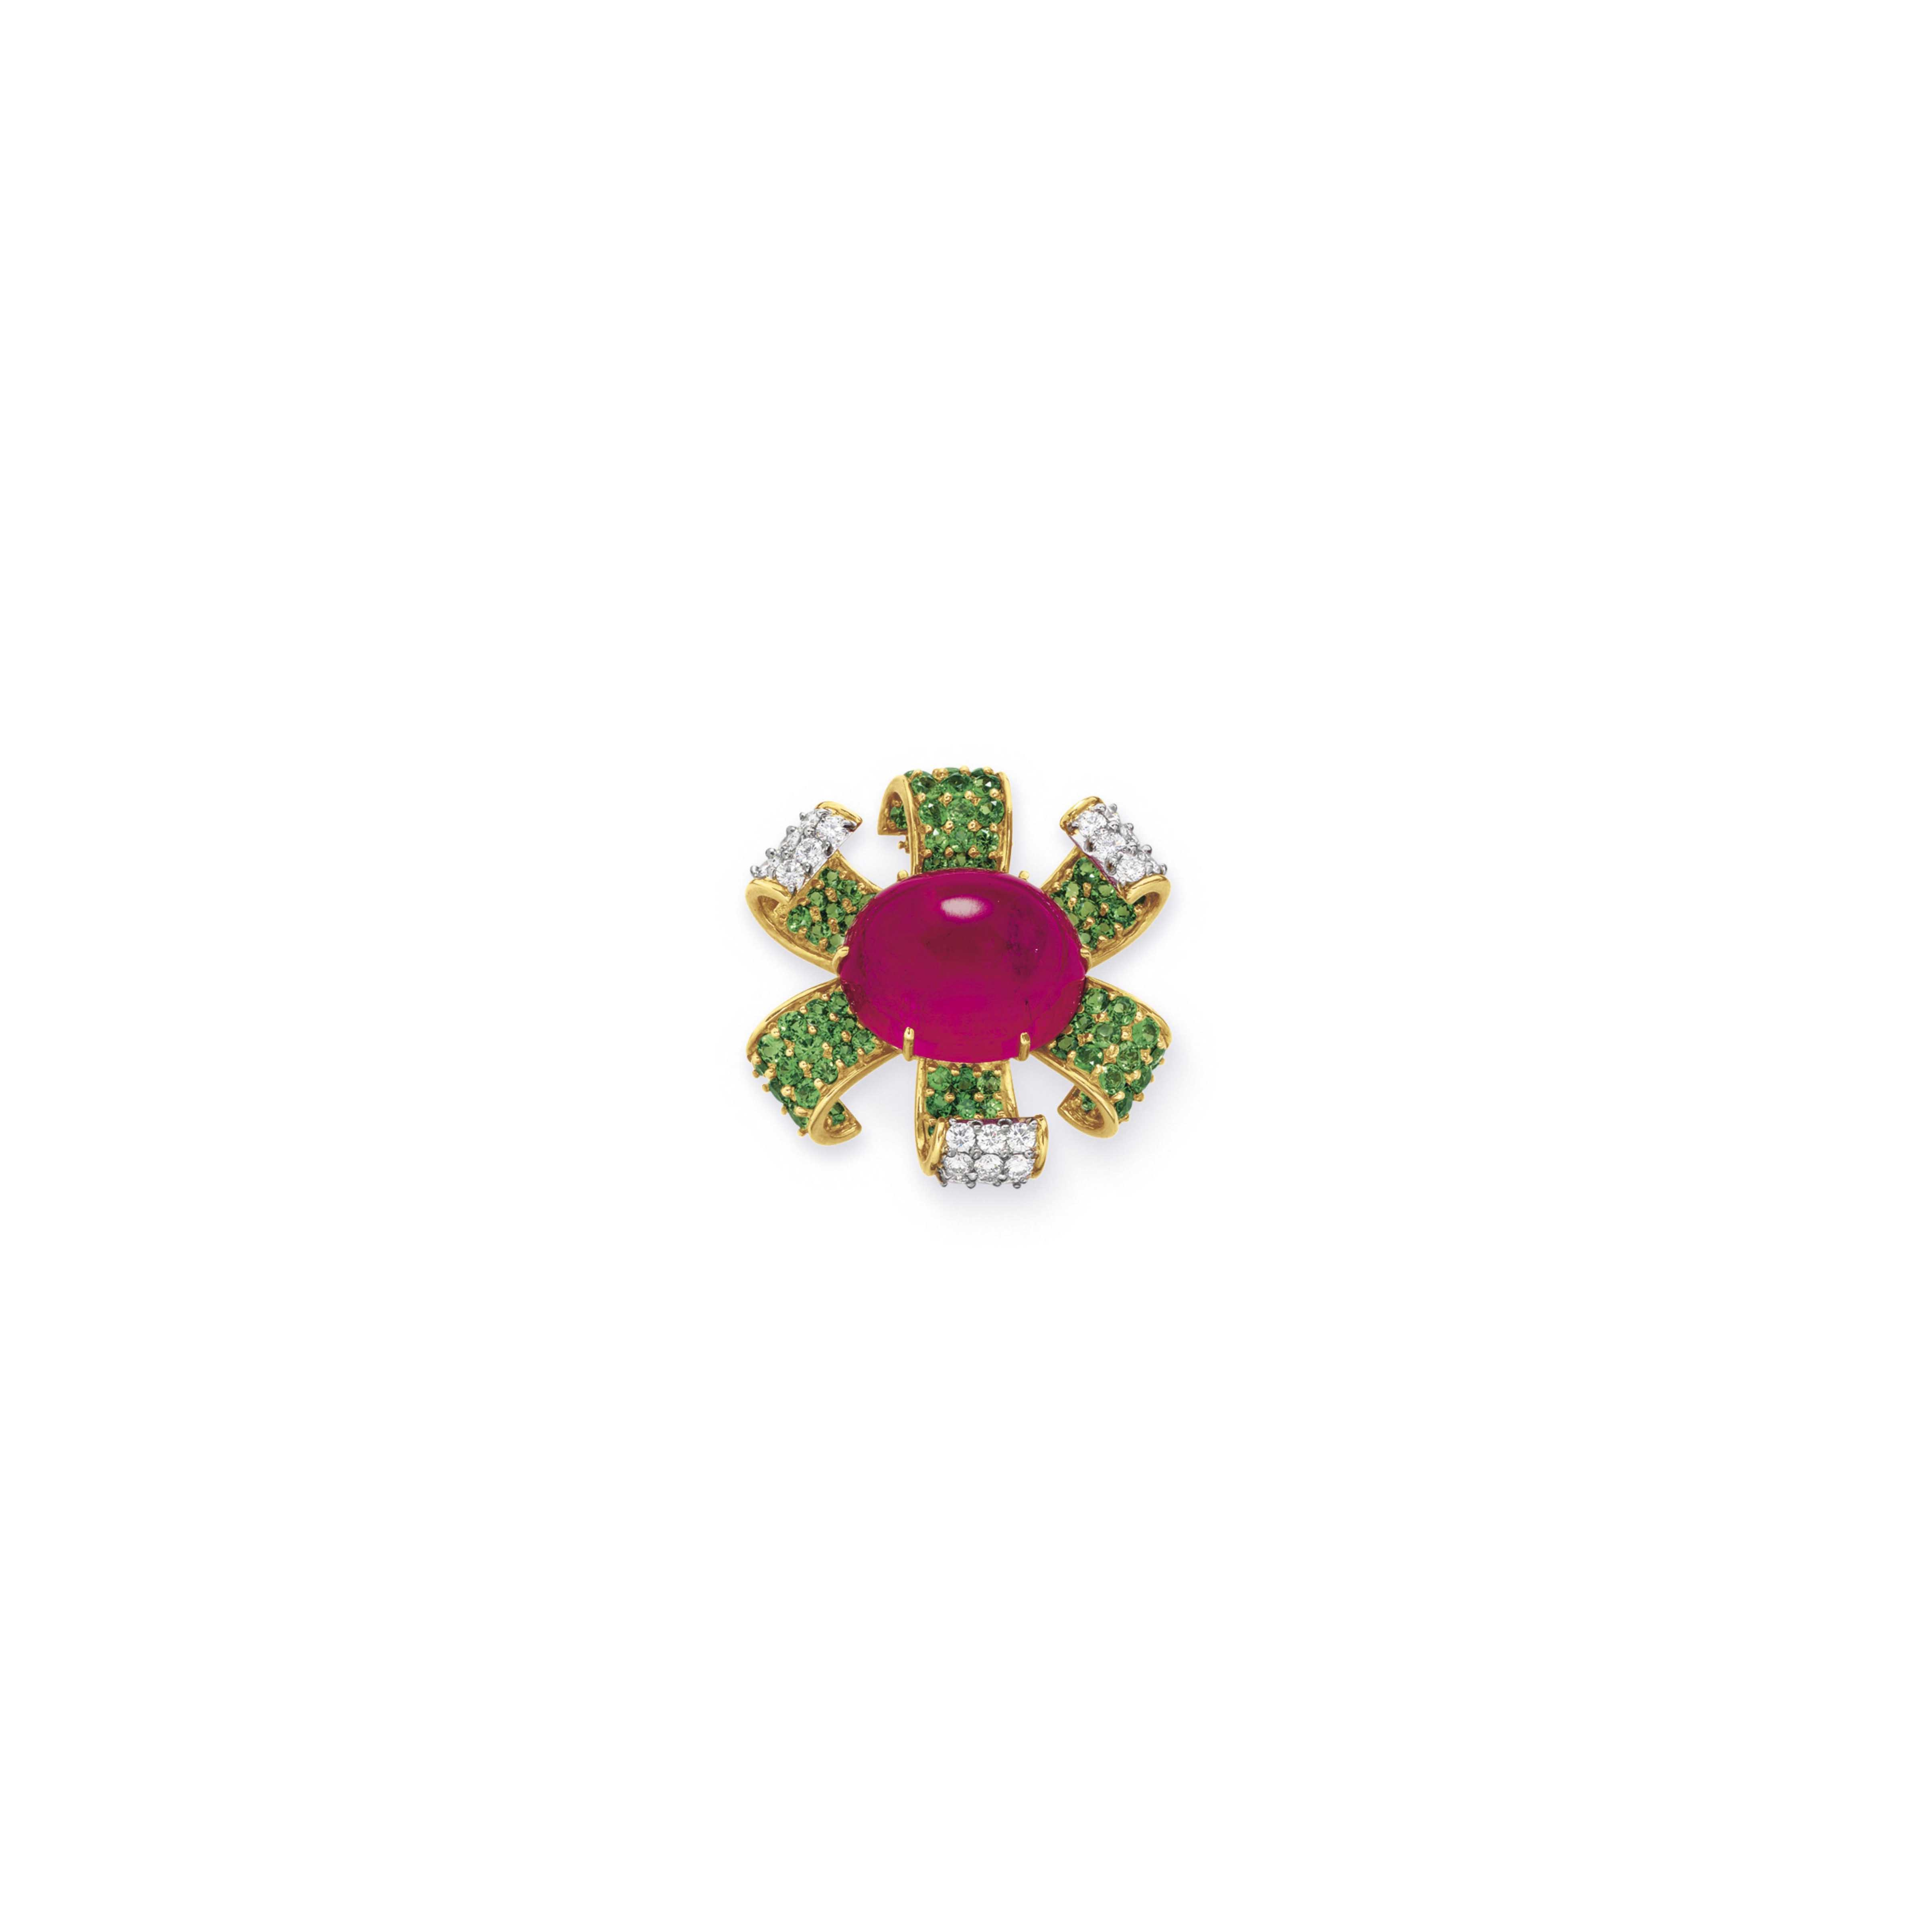 A TOURMALINE, DIAMOND AND GARNET BROOCH, BY PALOMA PICASSO, TIFFANY & CO.